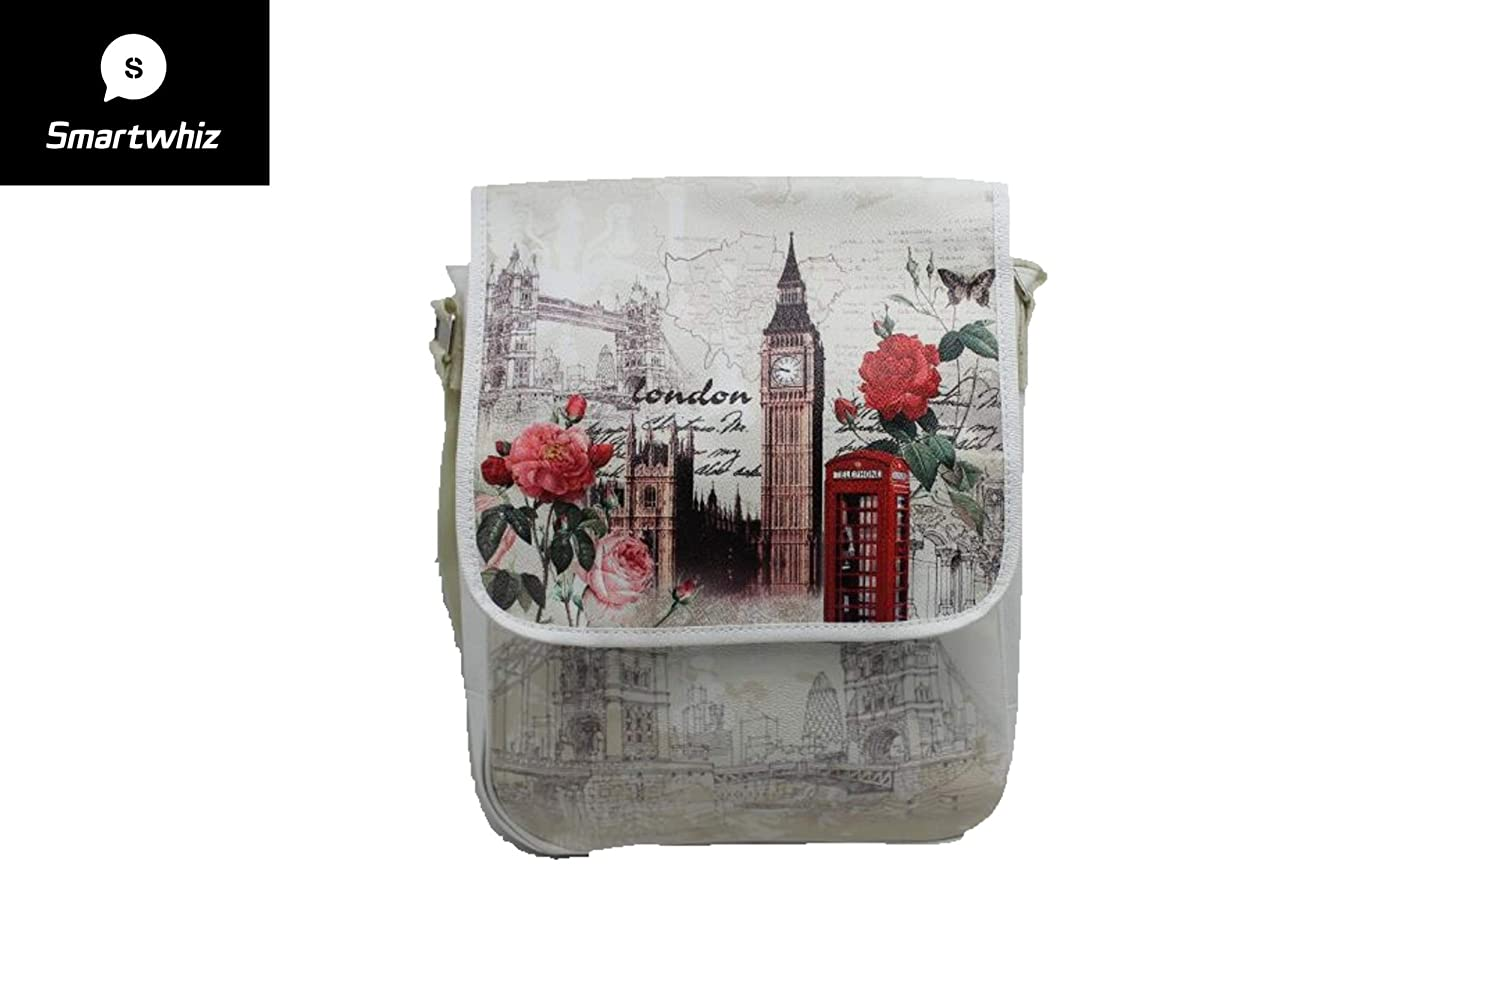 Smartwhiz London Big Ben Tower Clock Design Premium Messenger Bag for School Work and Travel Unisex Cross-body Bag